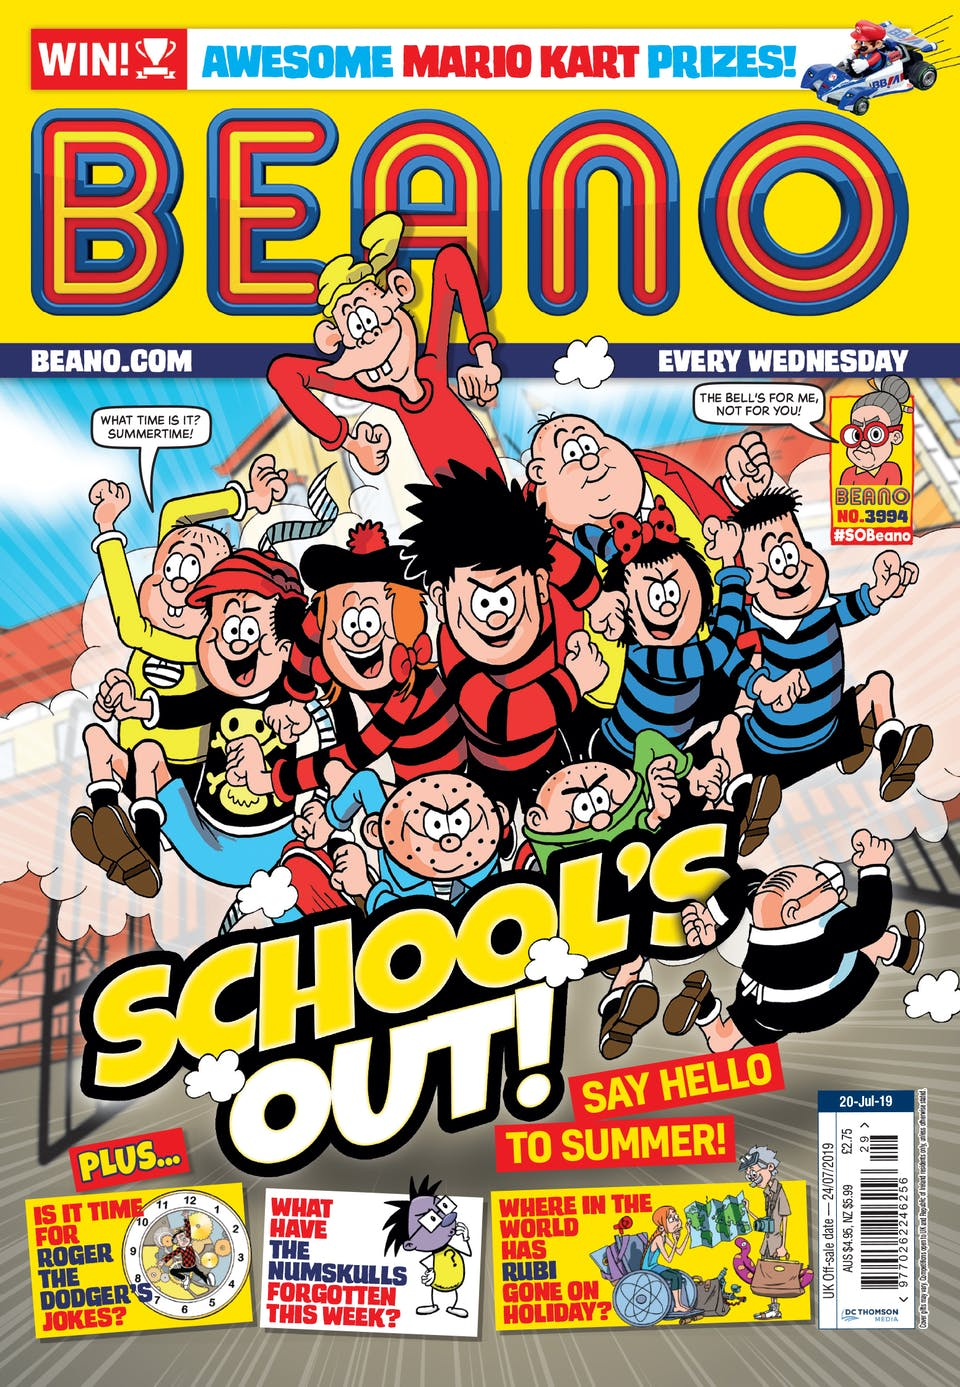 Inside Beano no. 3994 - School's Out!